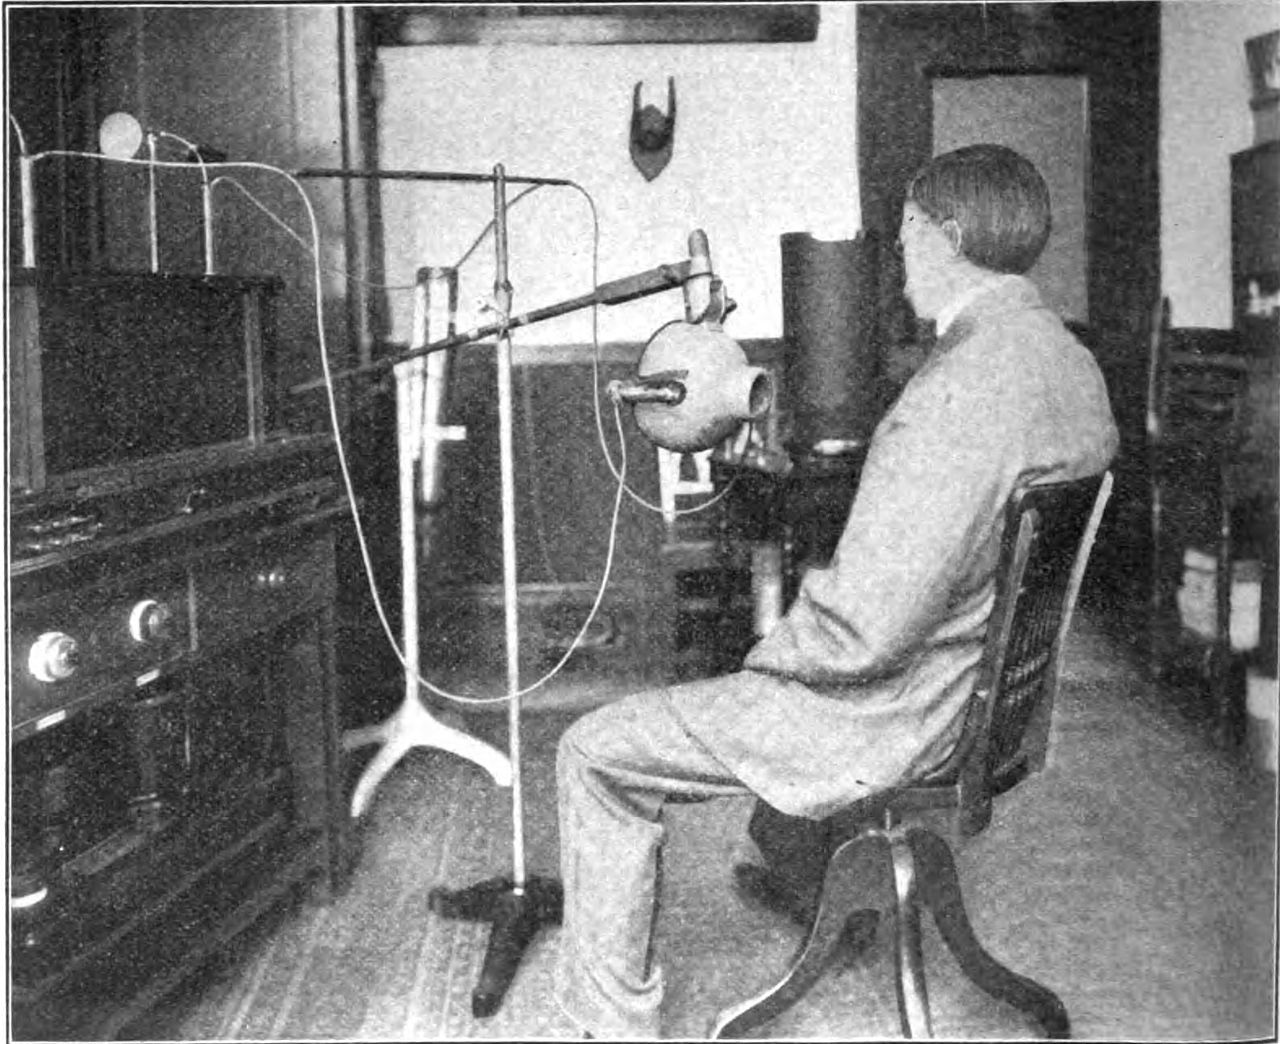 Early 20th century physicians used little-understood at the time radiation to treat illnesses such as tuberculosis